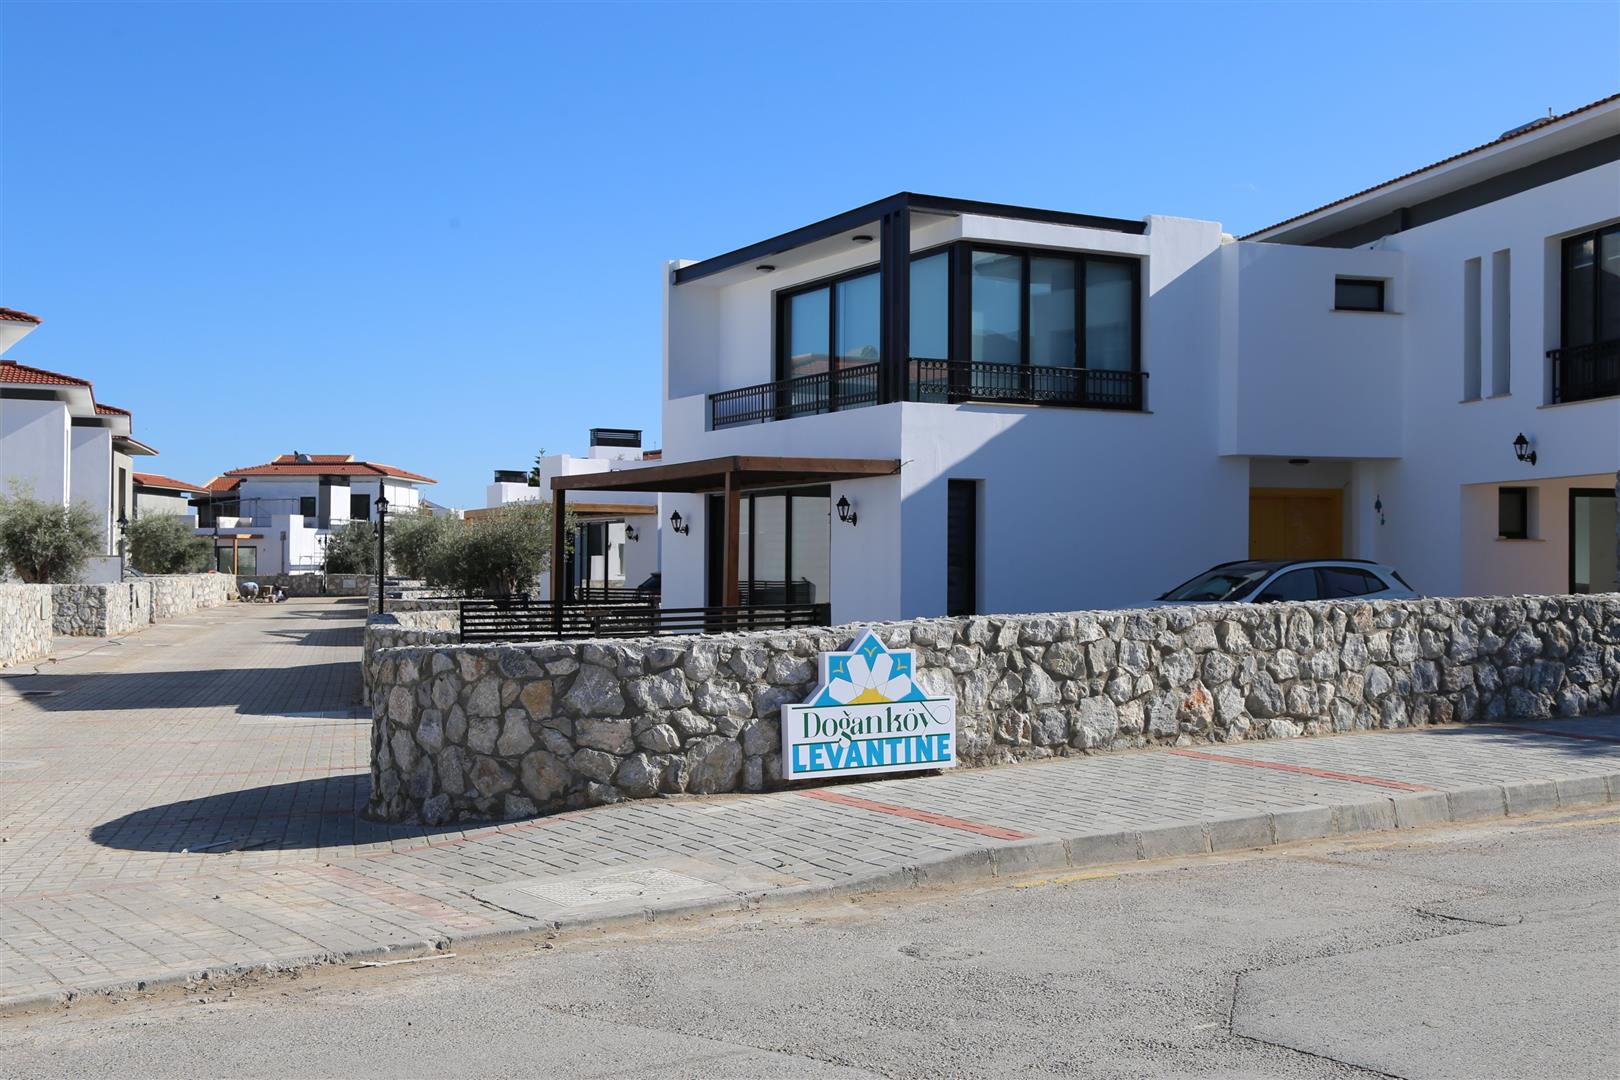 Deluxe 3 bedroom well situated villa